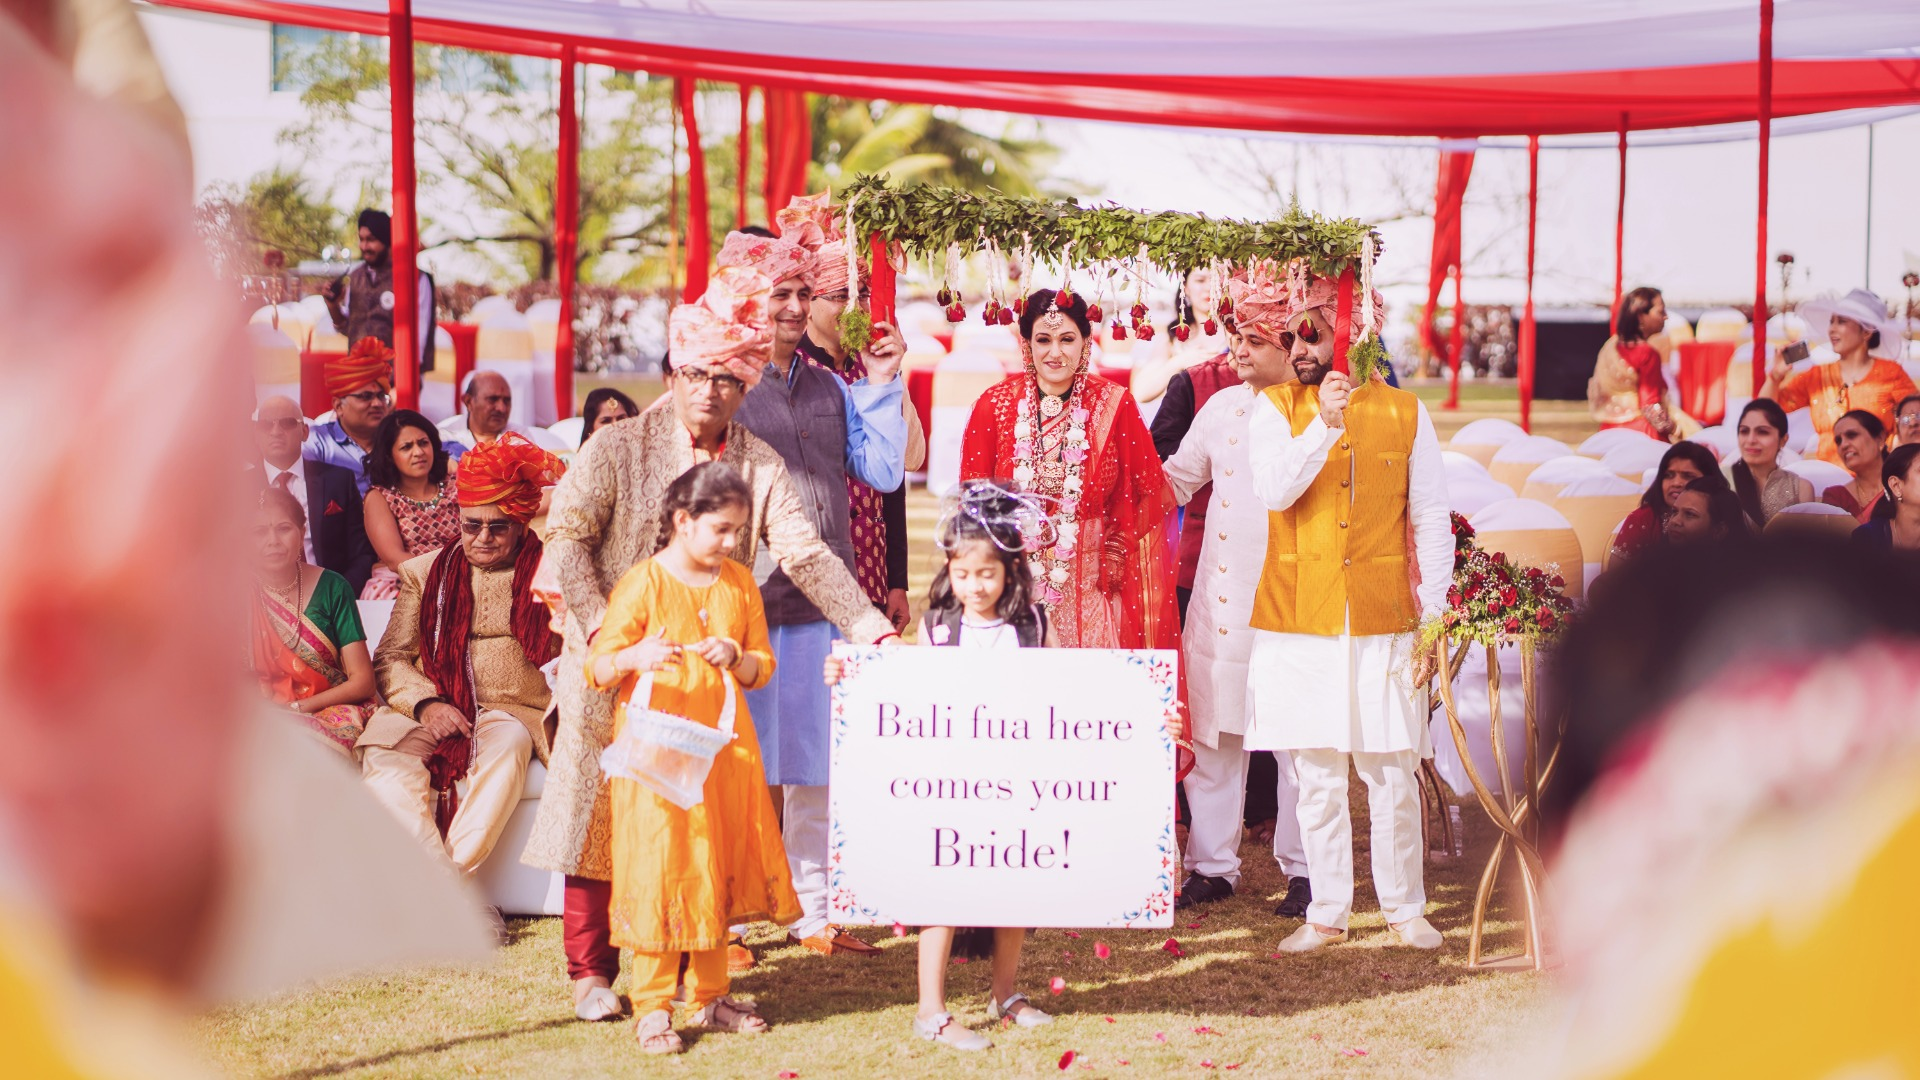 Bridal Entry in Phoolon Ki Chaadar and Funny Message Signage with Kids